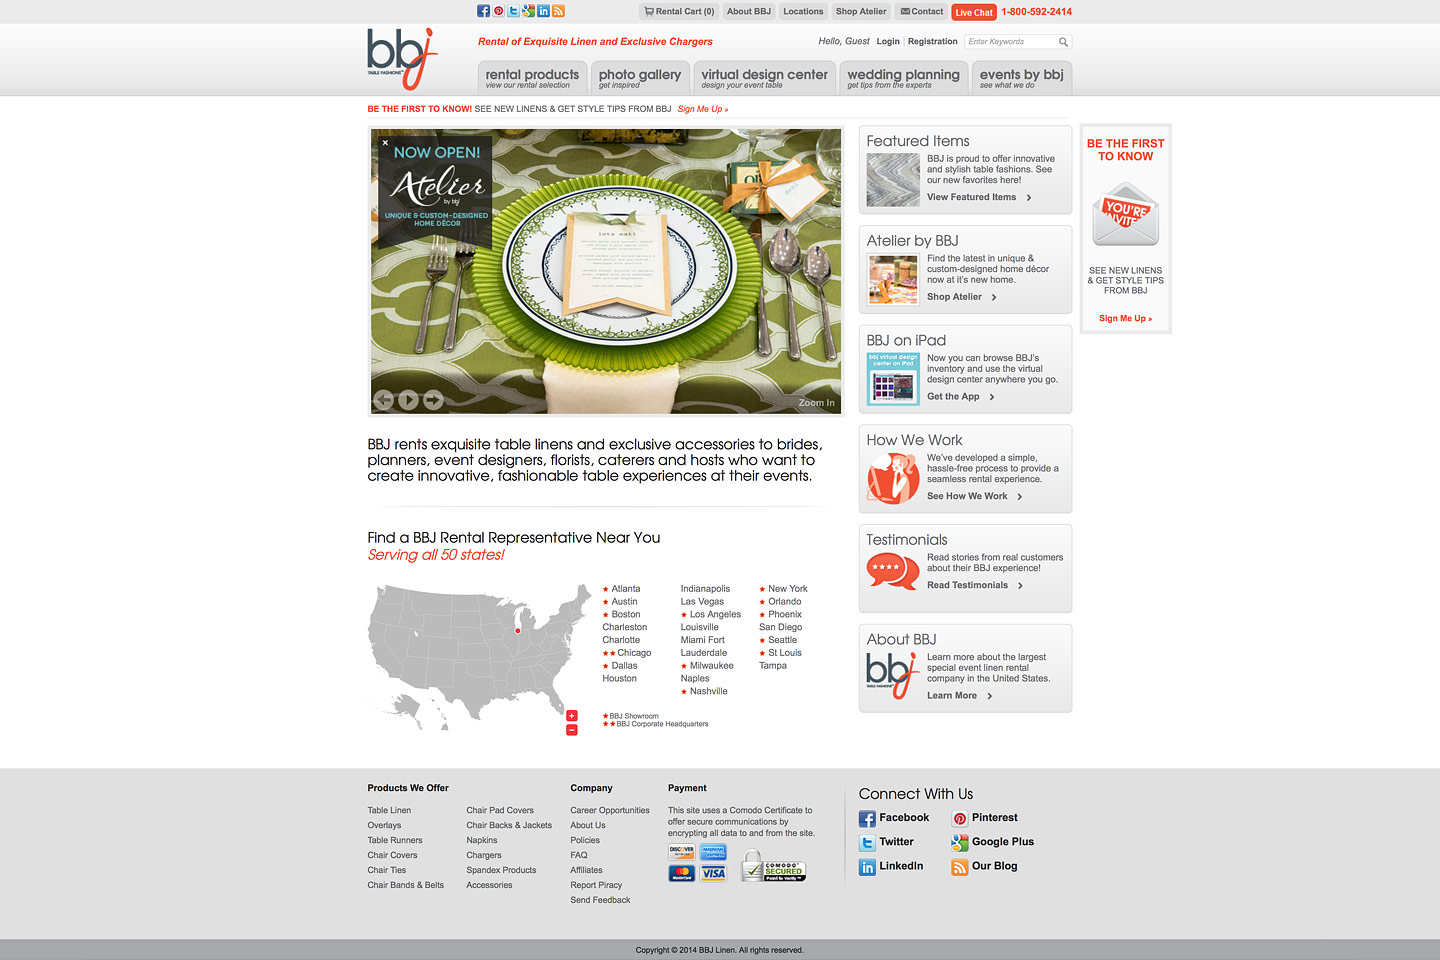 a screen capture of the bbjlinen.com homepage